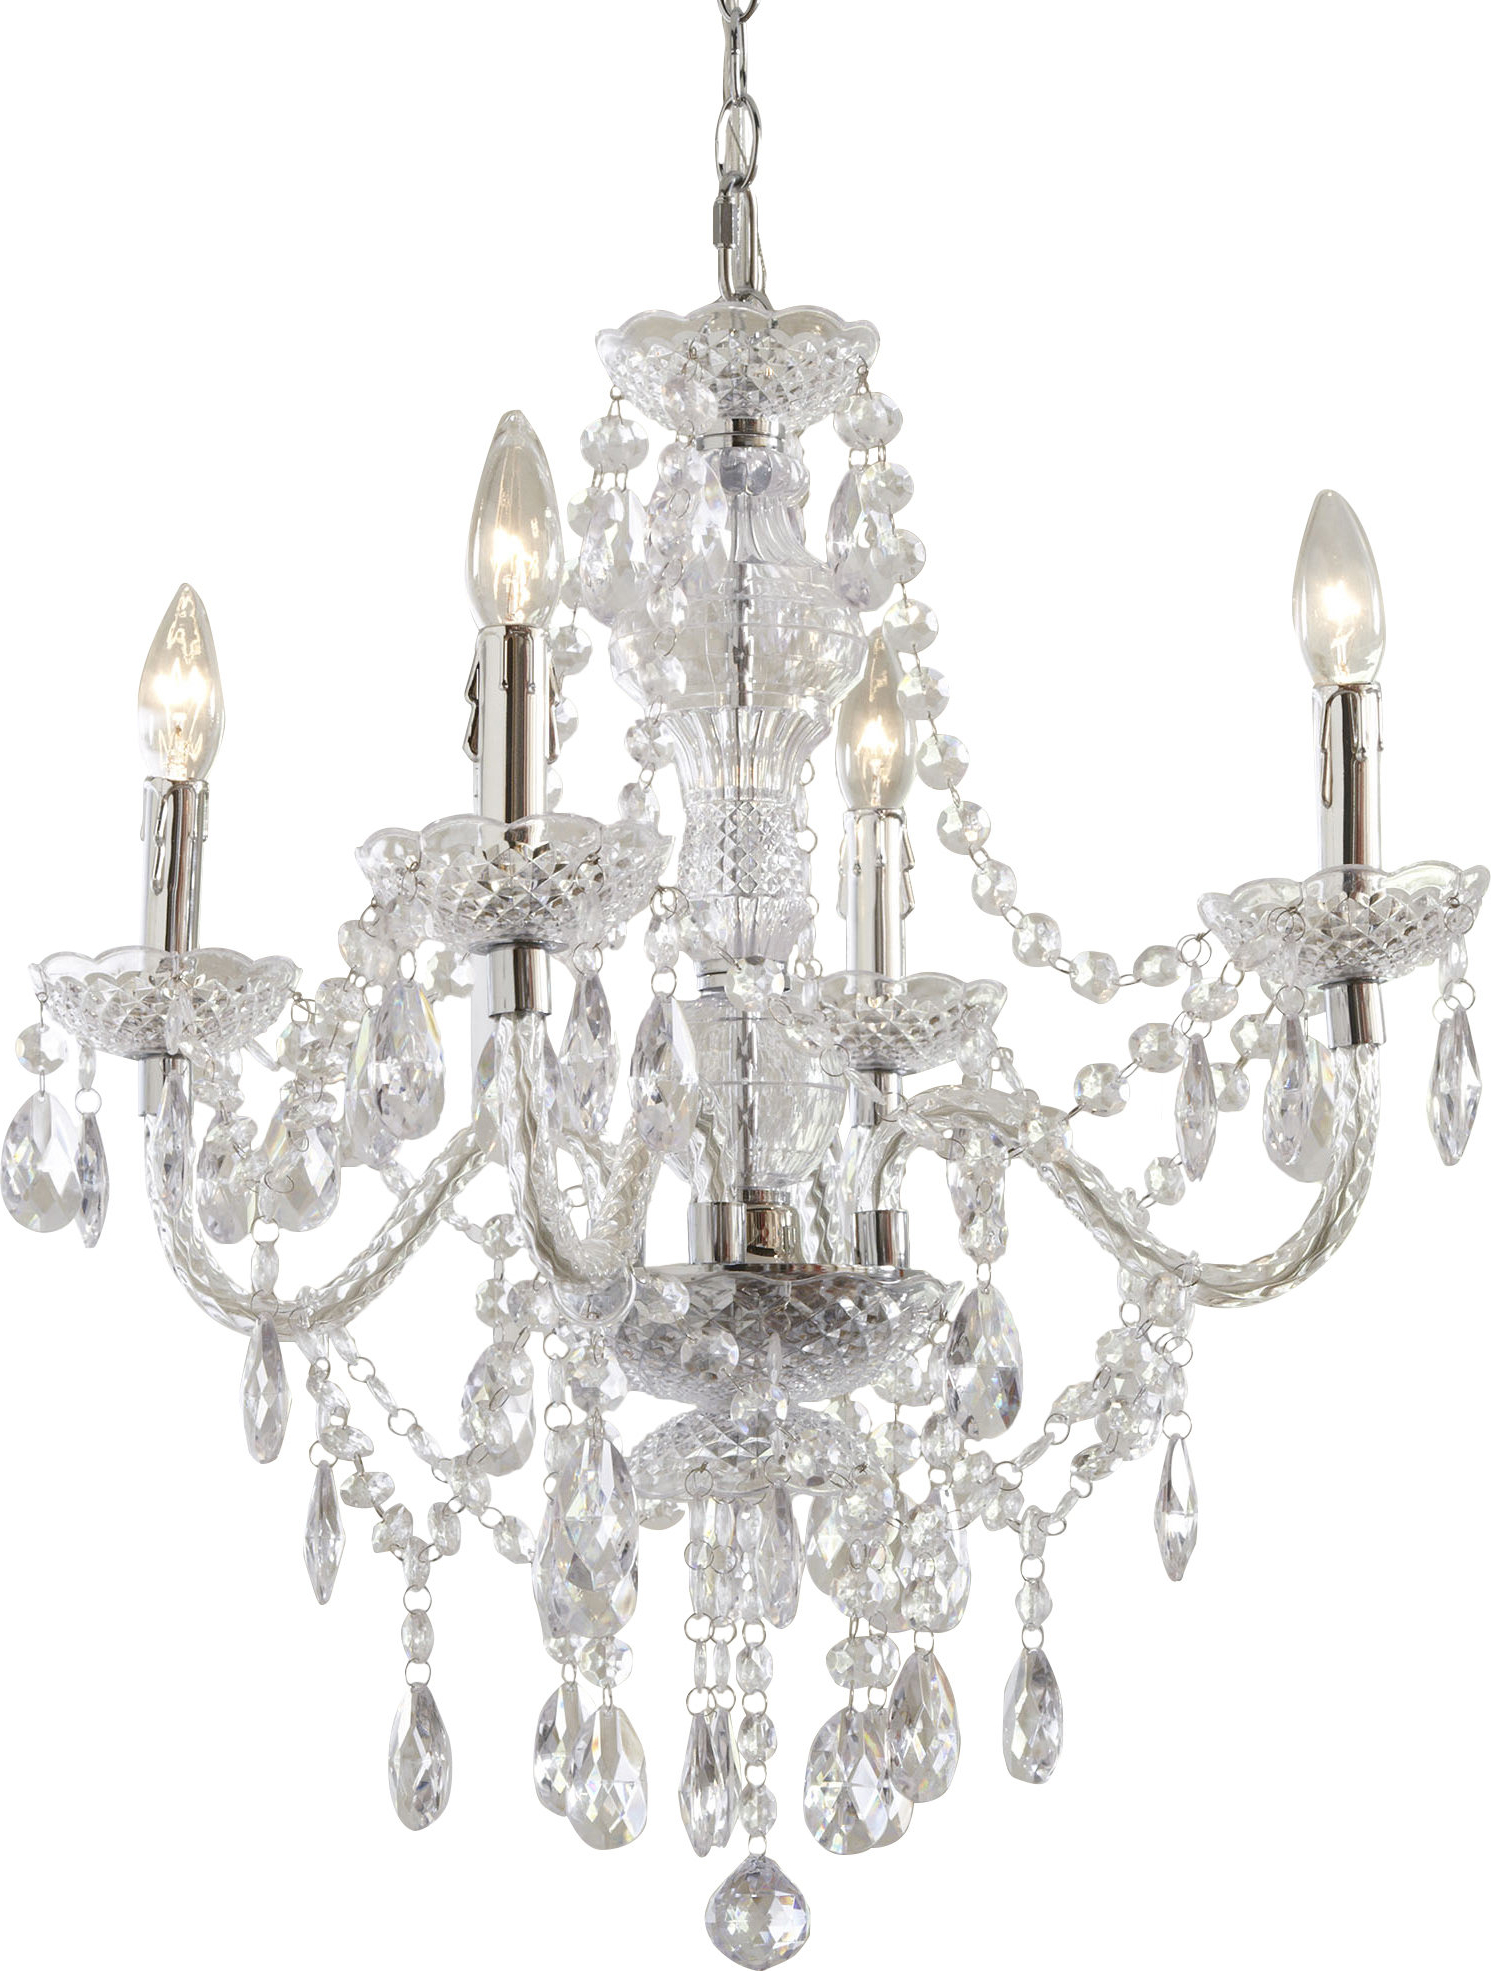 Ice Palace 4 Light Candle Style Chandelier Intended For Most Up To Date Aldora 4 Light Candle Style Chandeliers (View 16 of 20)